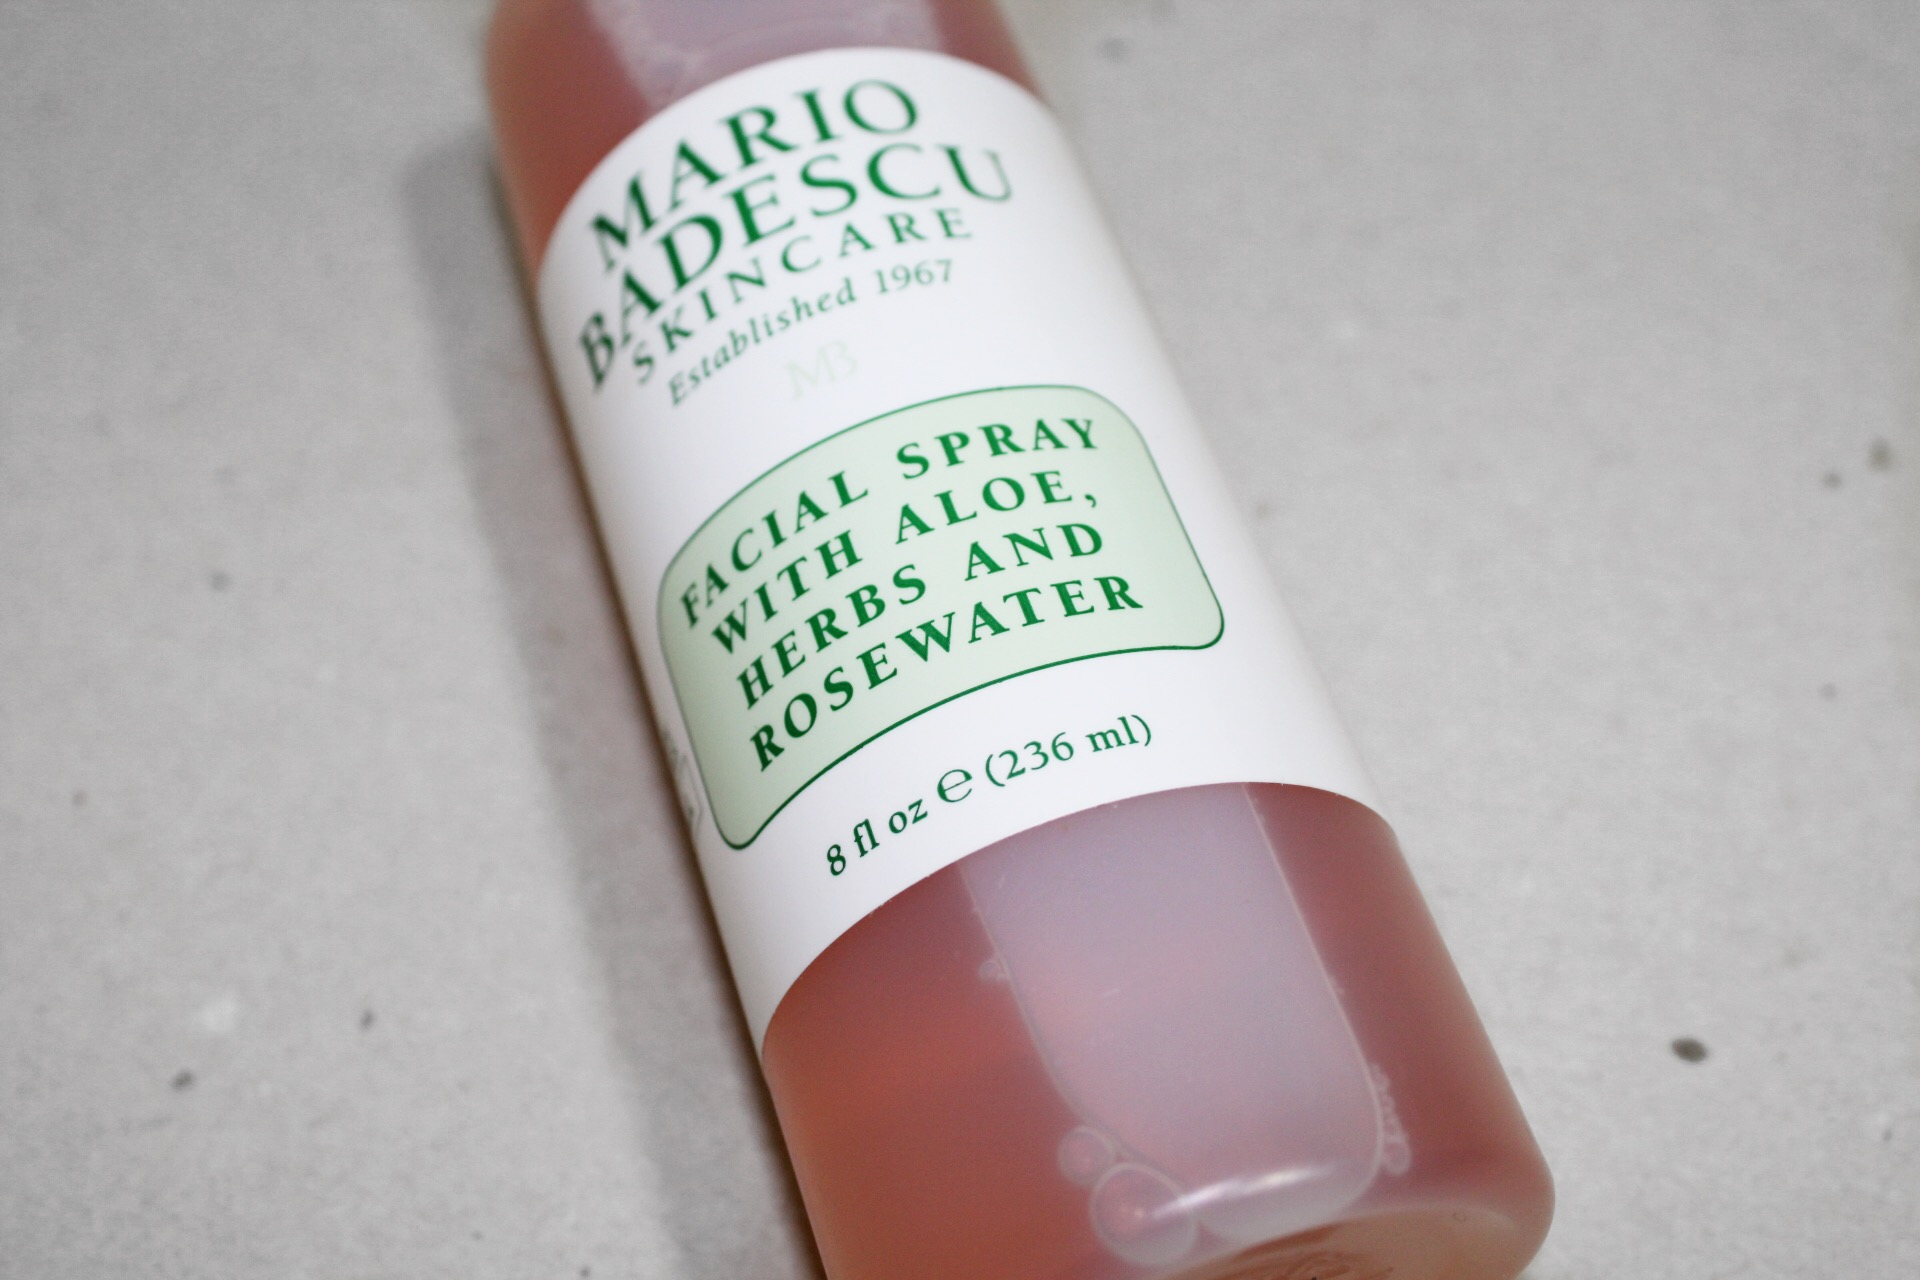 Why I Gave Up On The Mario Badescu Rosewater Spray